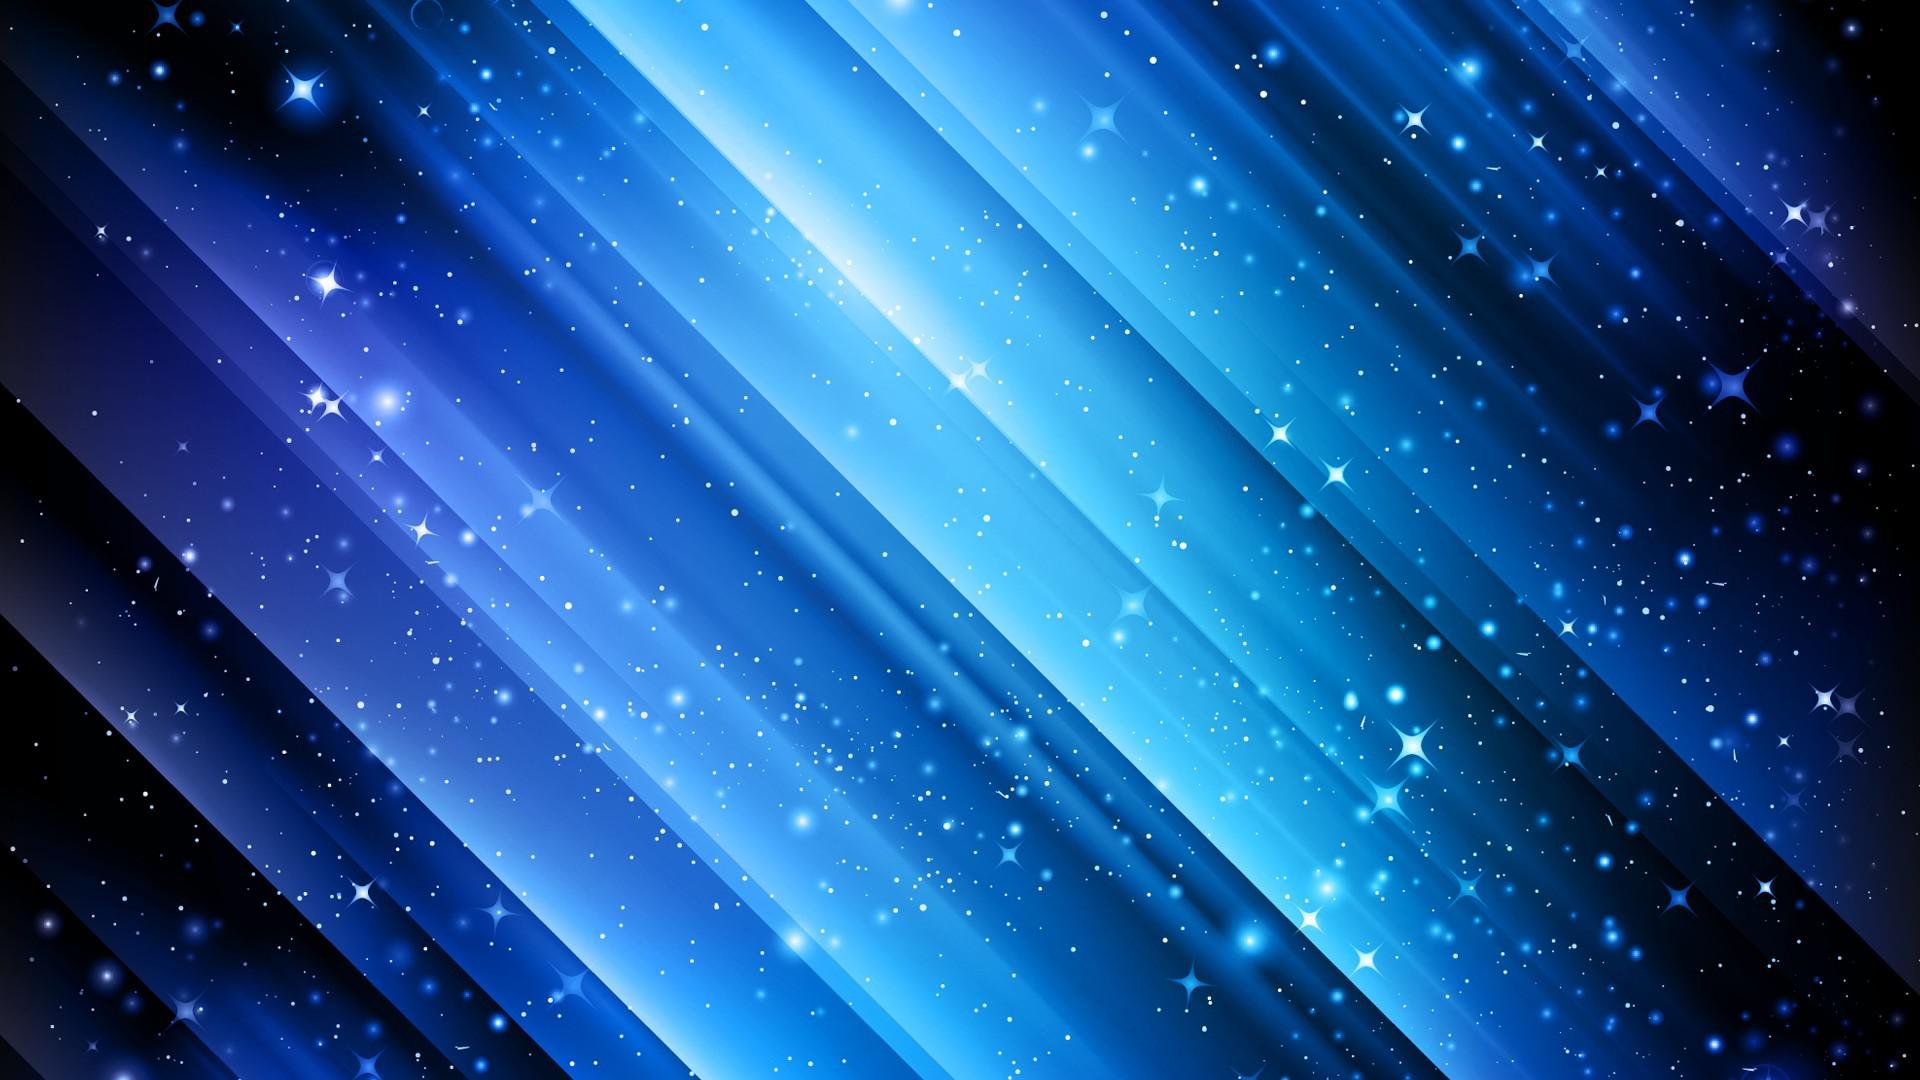 Hd Abstract Blue Winter Snow Stars Vectors Lines Graphics High Resolution Blue Background 1920x1080 Wallpaper Teahub Io